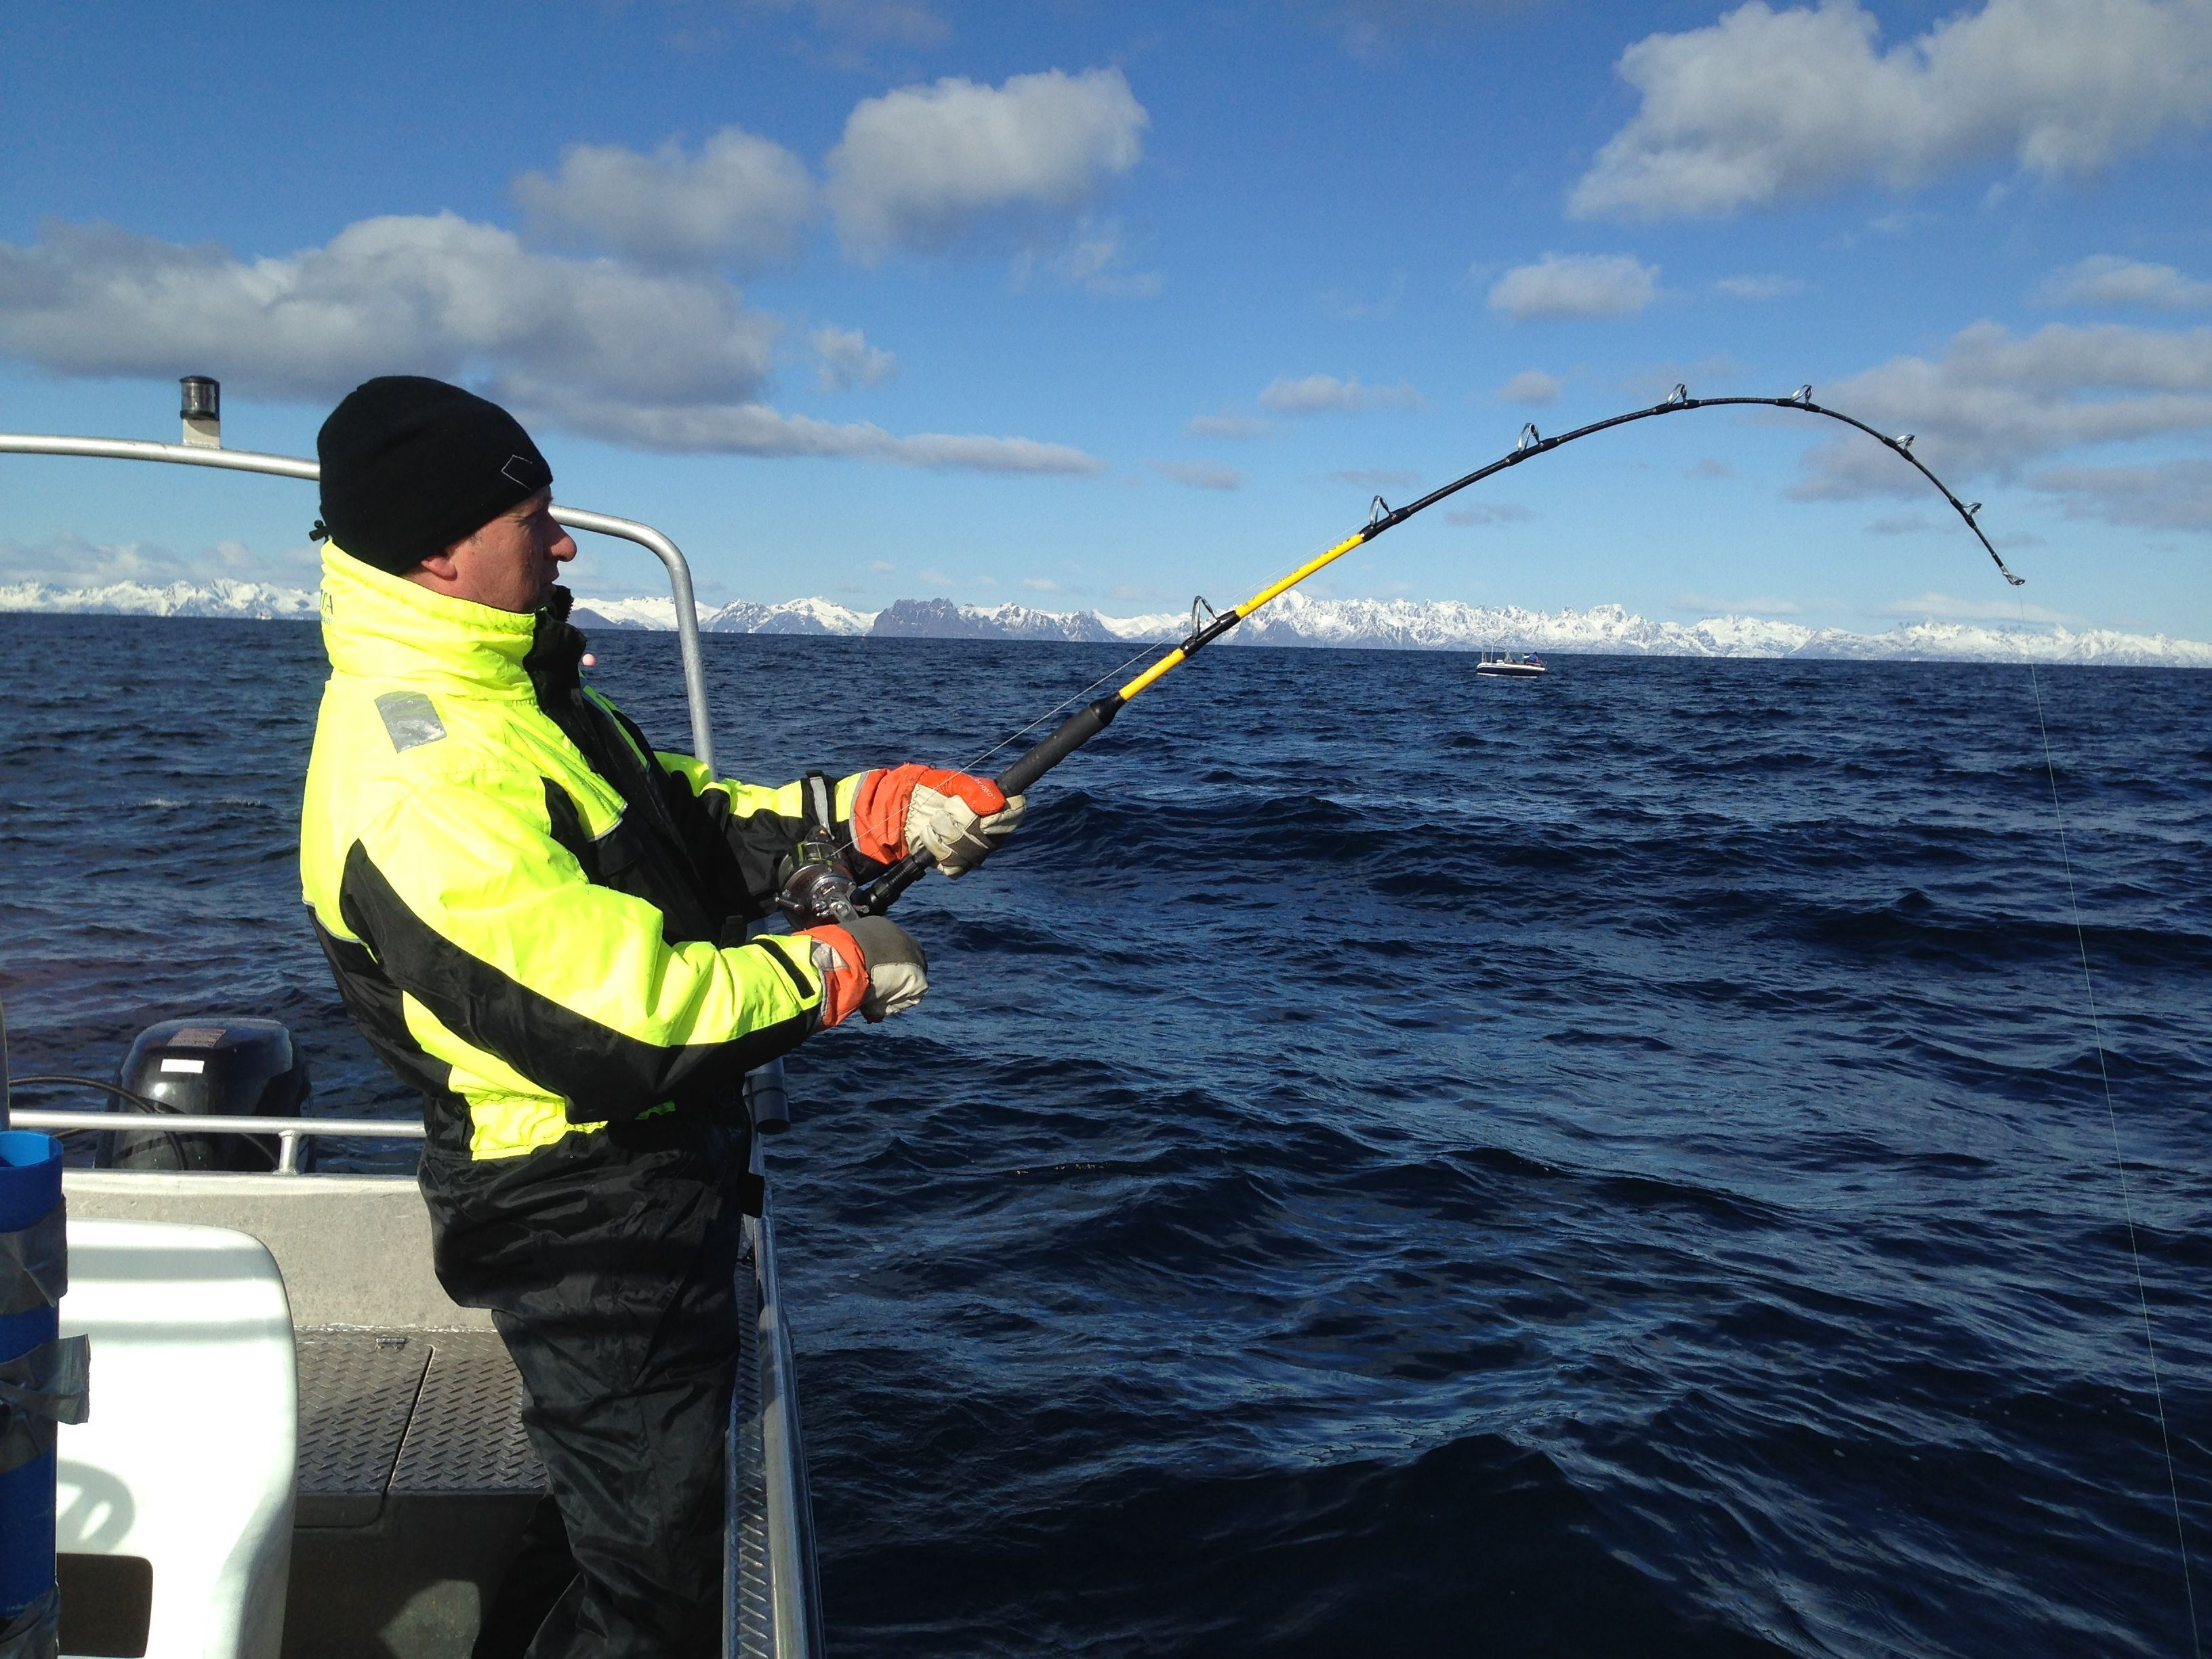 Paul Fortun, Fishing from Steigen Sjøhus